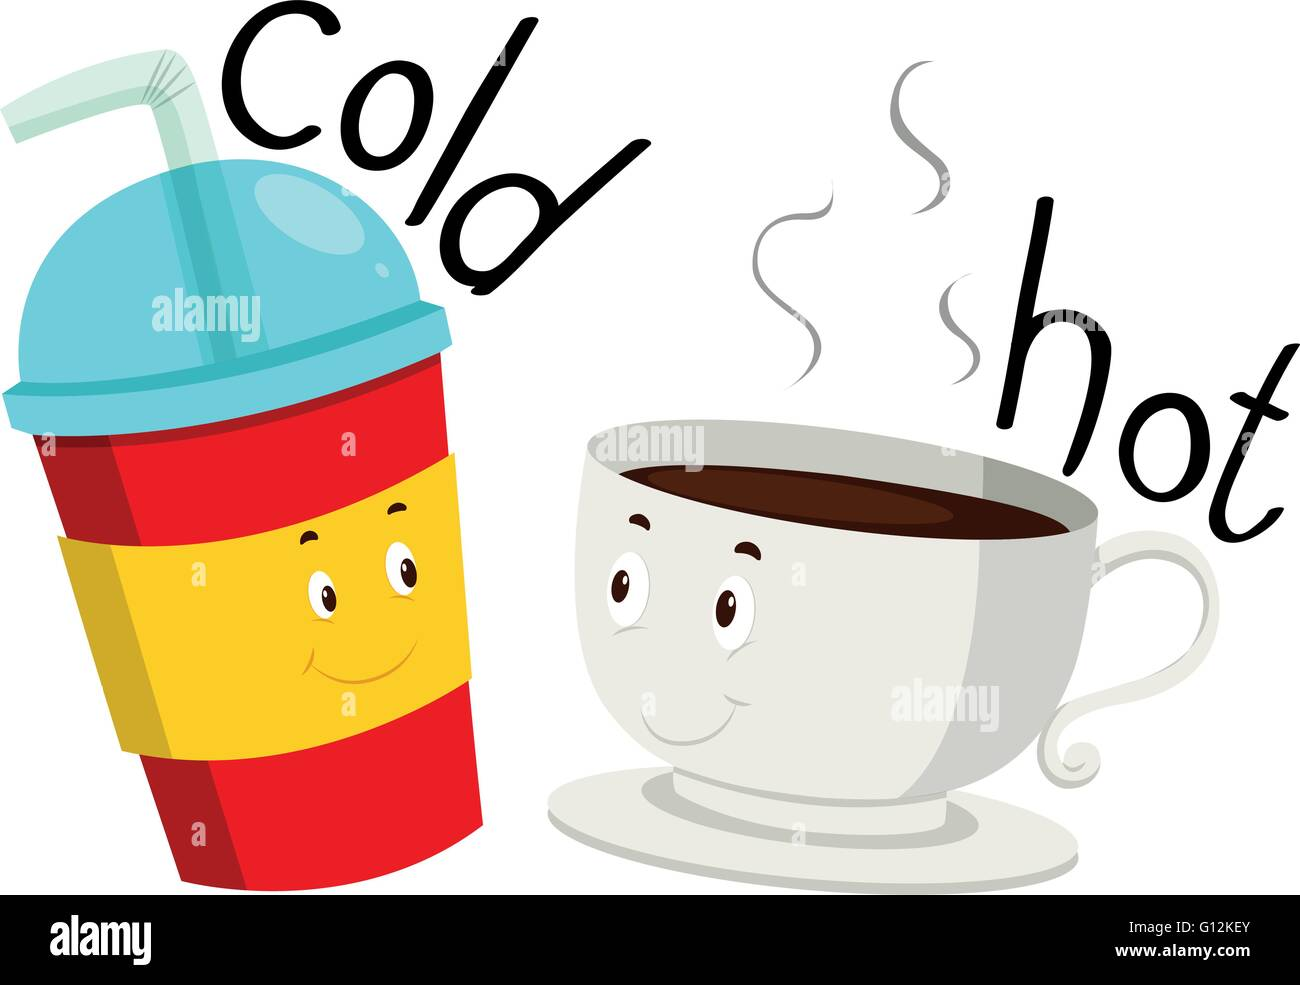 Opposite Adjective Cold And Hot Illustration Stock Vector